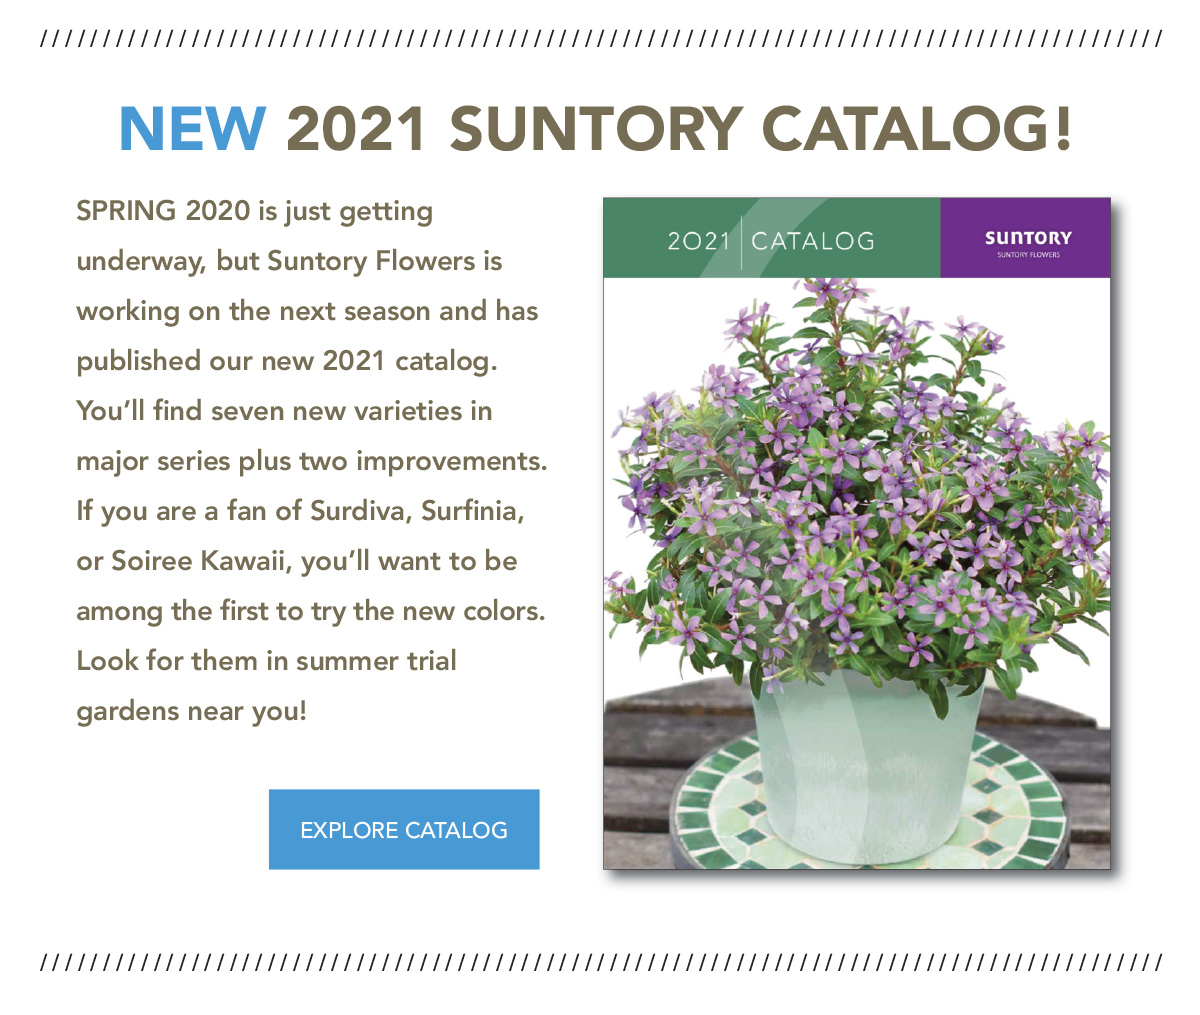 Hot off the presses! Download the 2021 catalog NOW